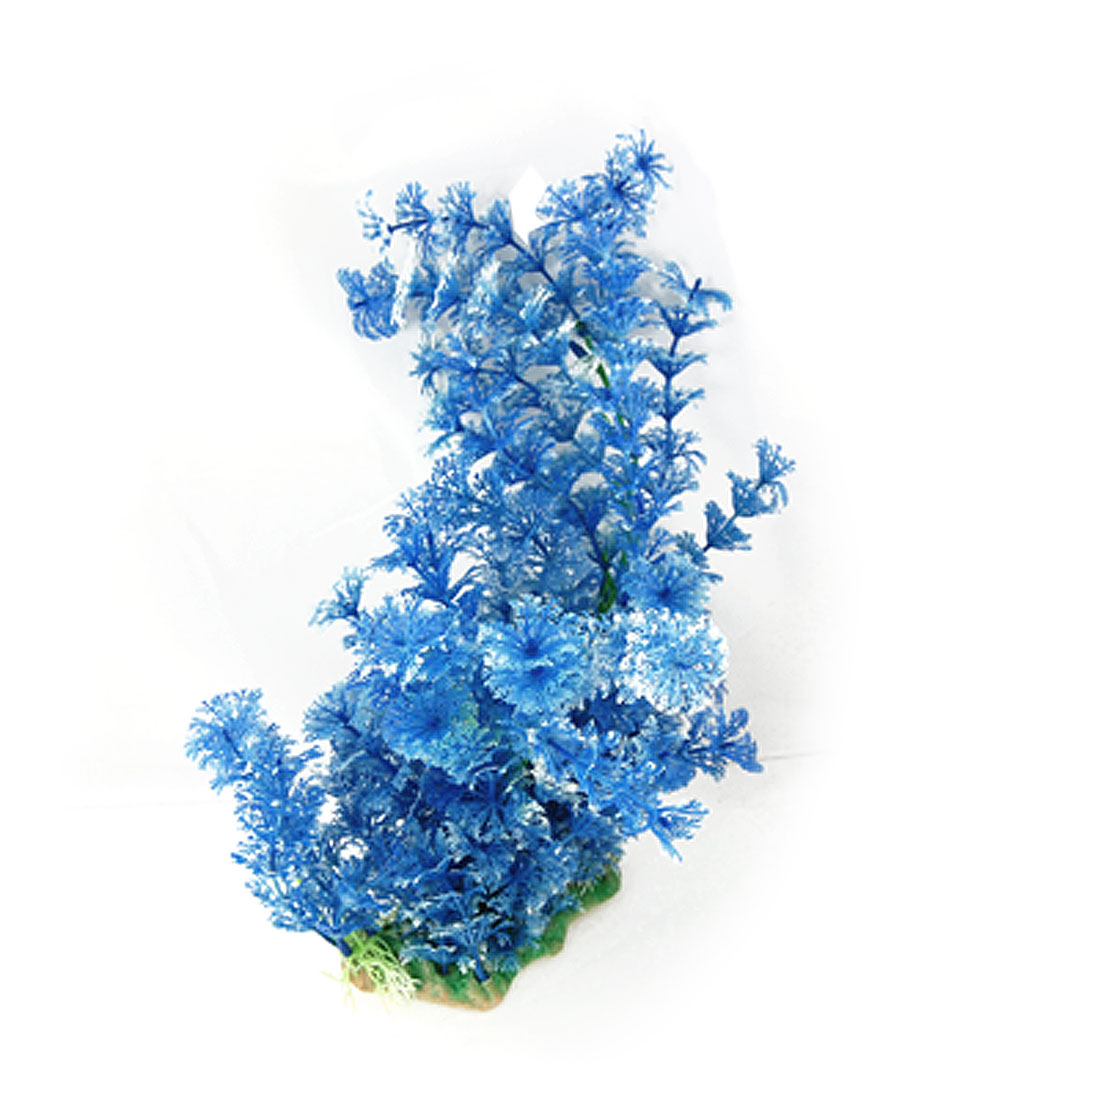 Fish Tank Aquarium Underwater Decor Plastic Plant Grass Blue White